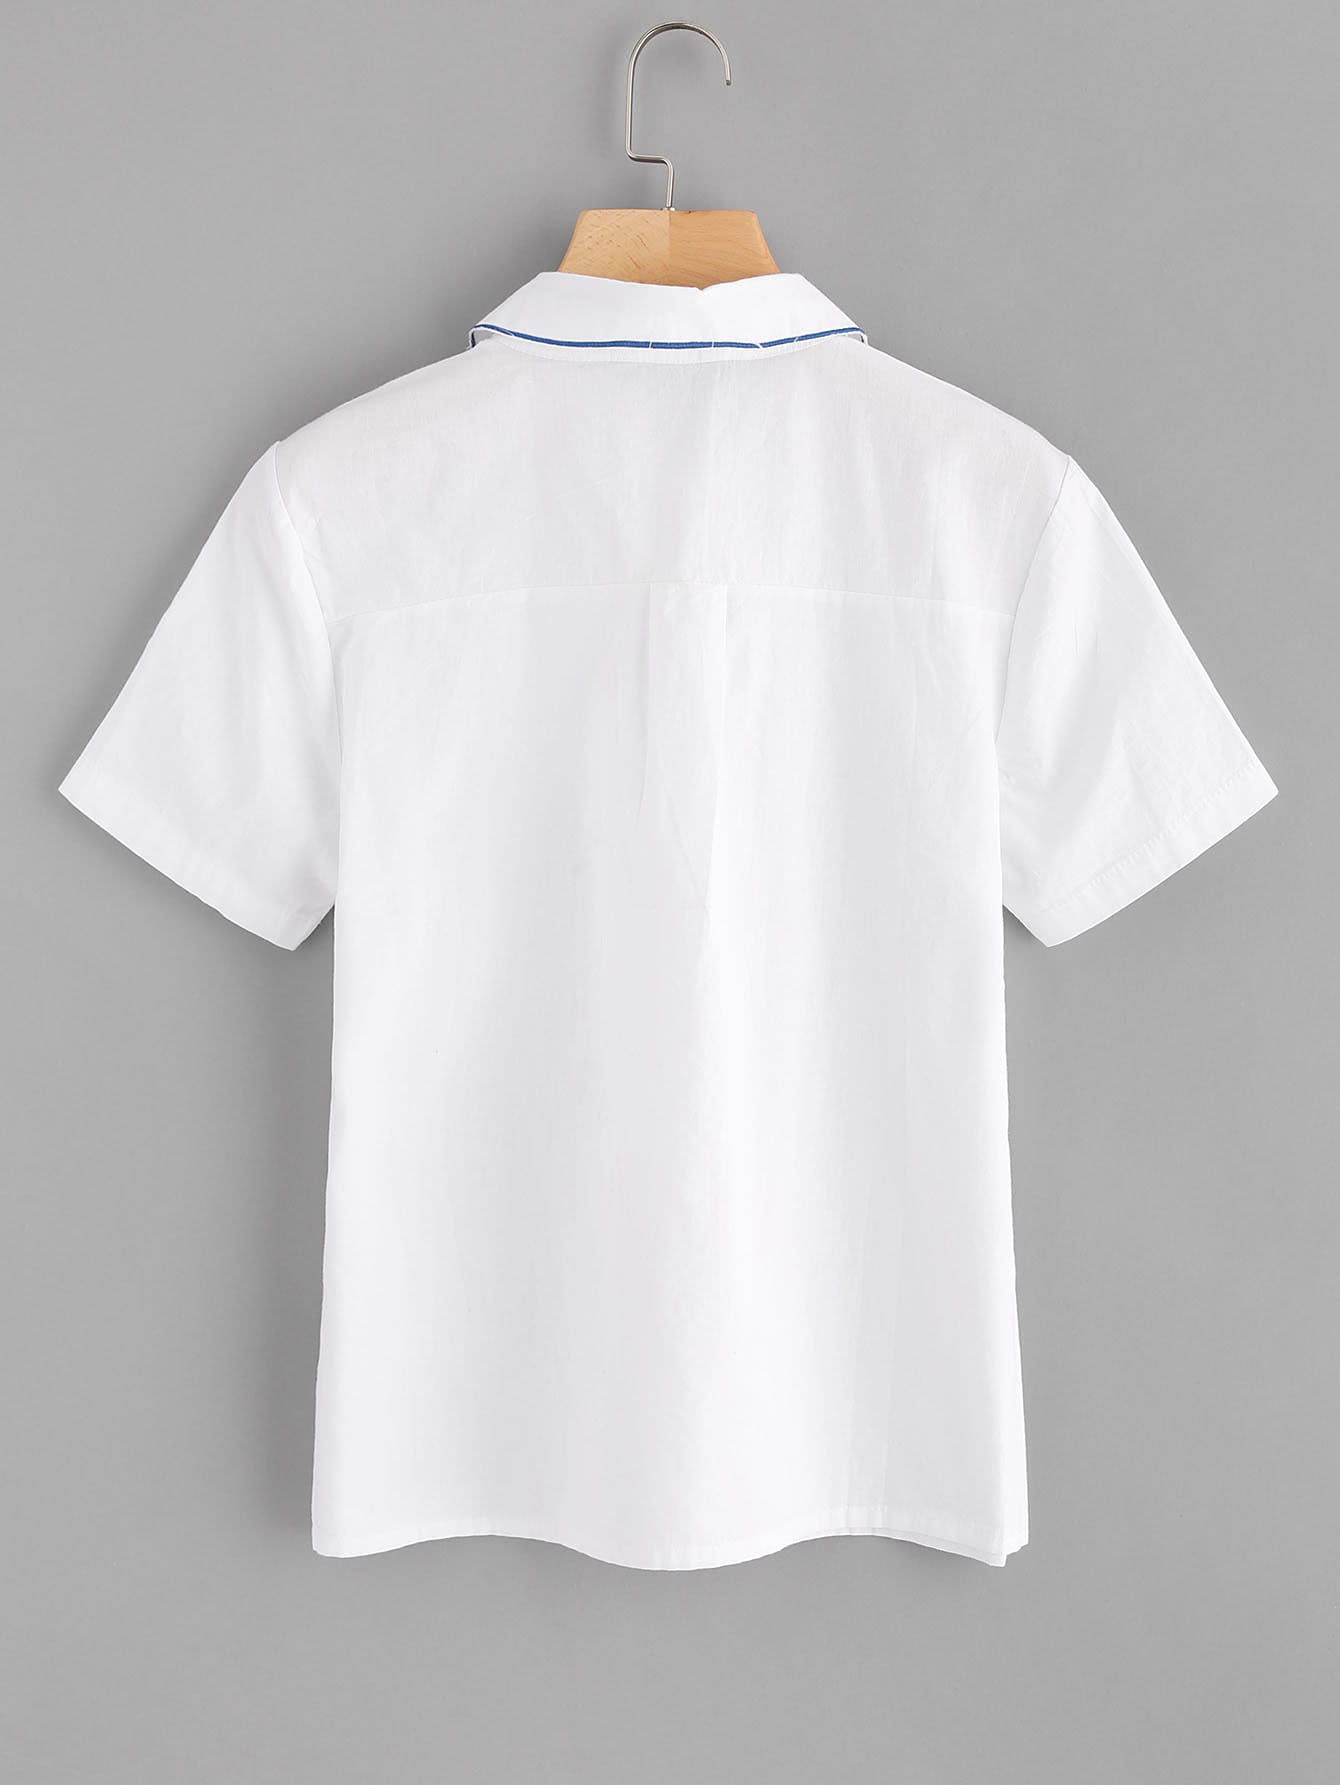 Hand-shaped Collar Embroidered Shirt